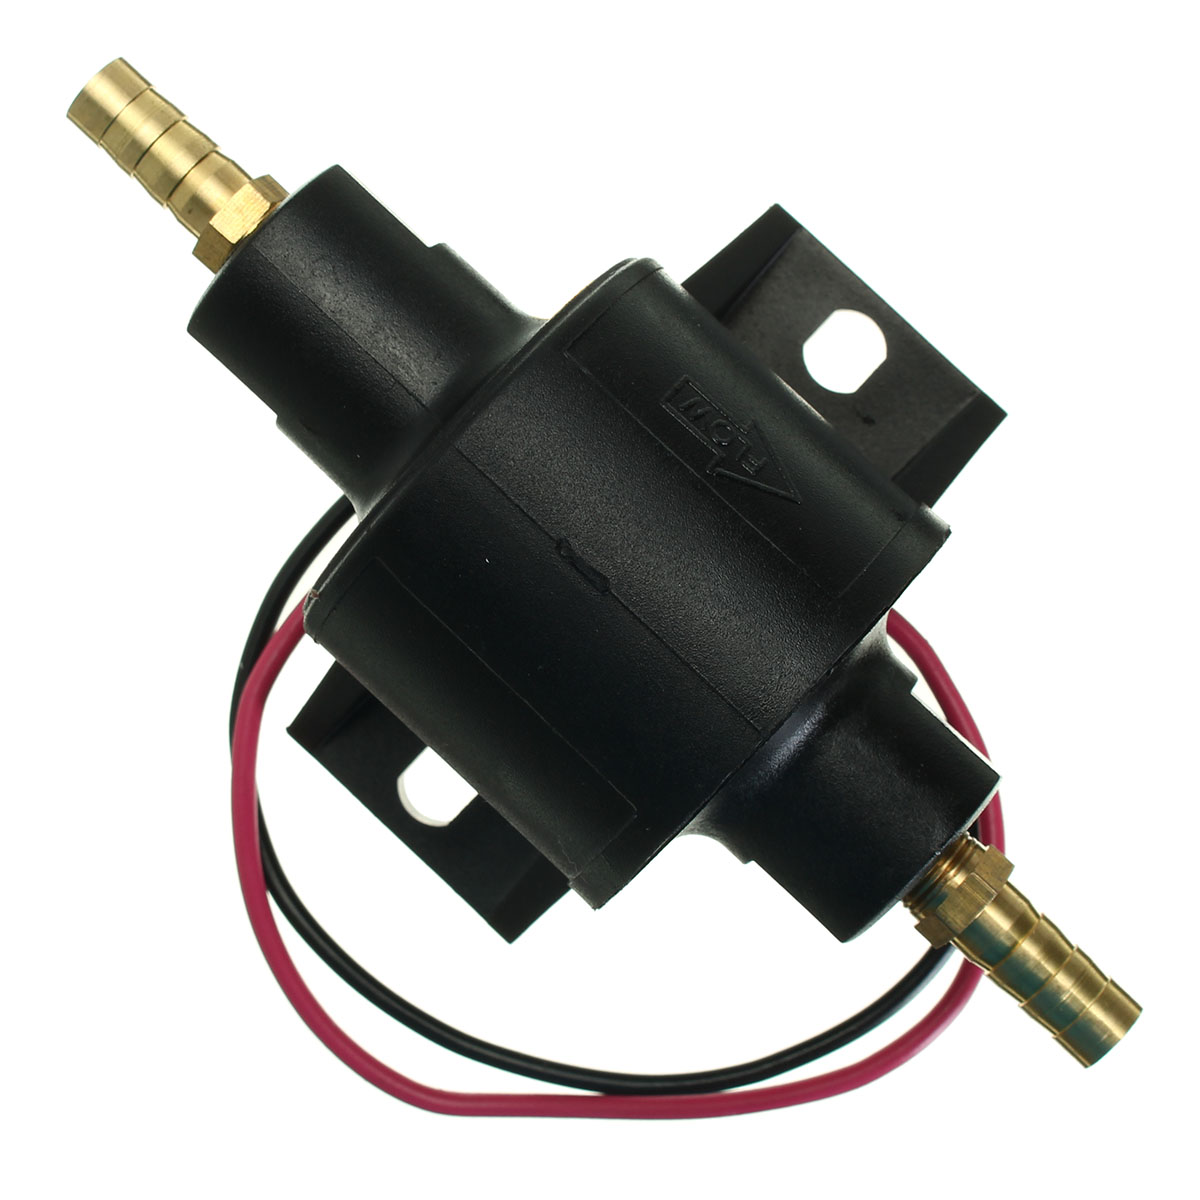 Universal 8mm 12V Electric Diesel Petrol Fuel Pump Posi